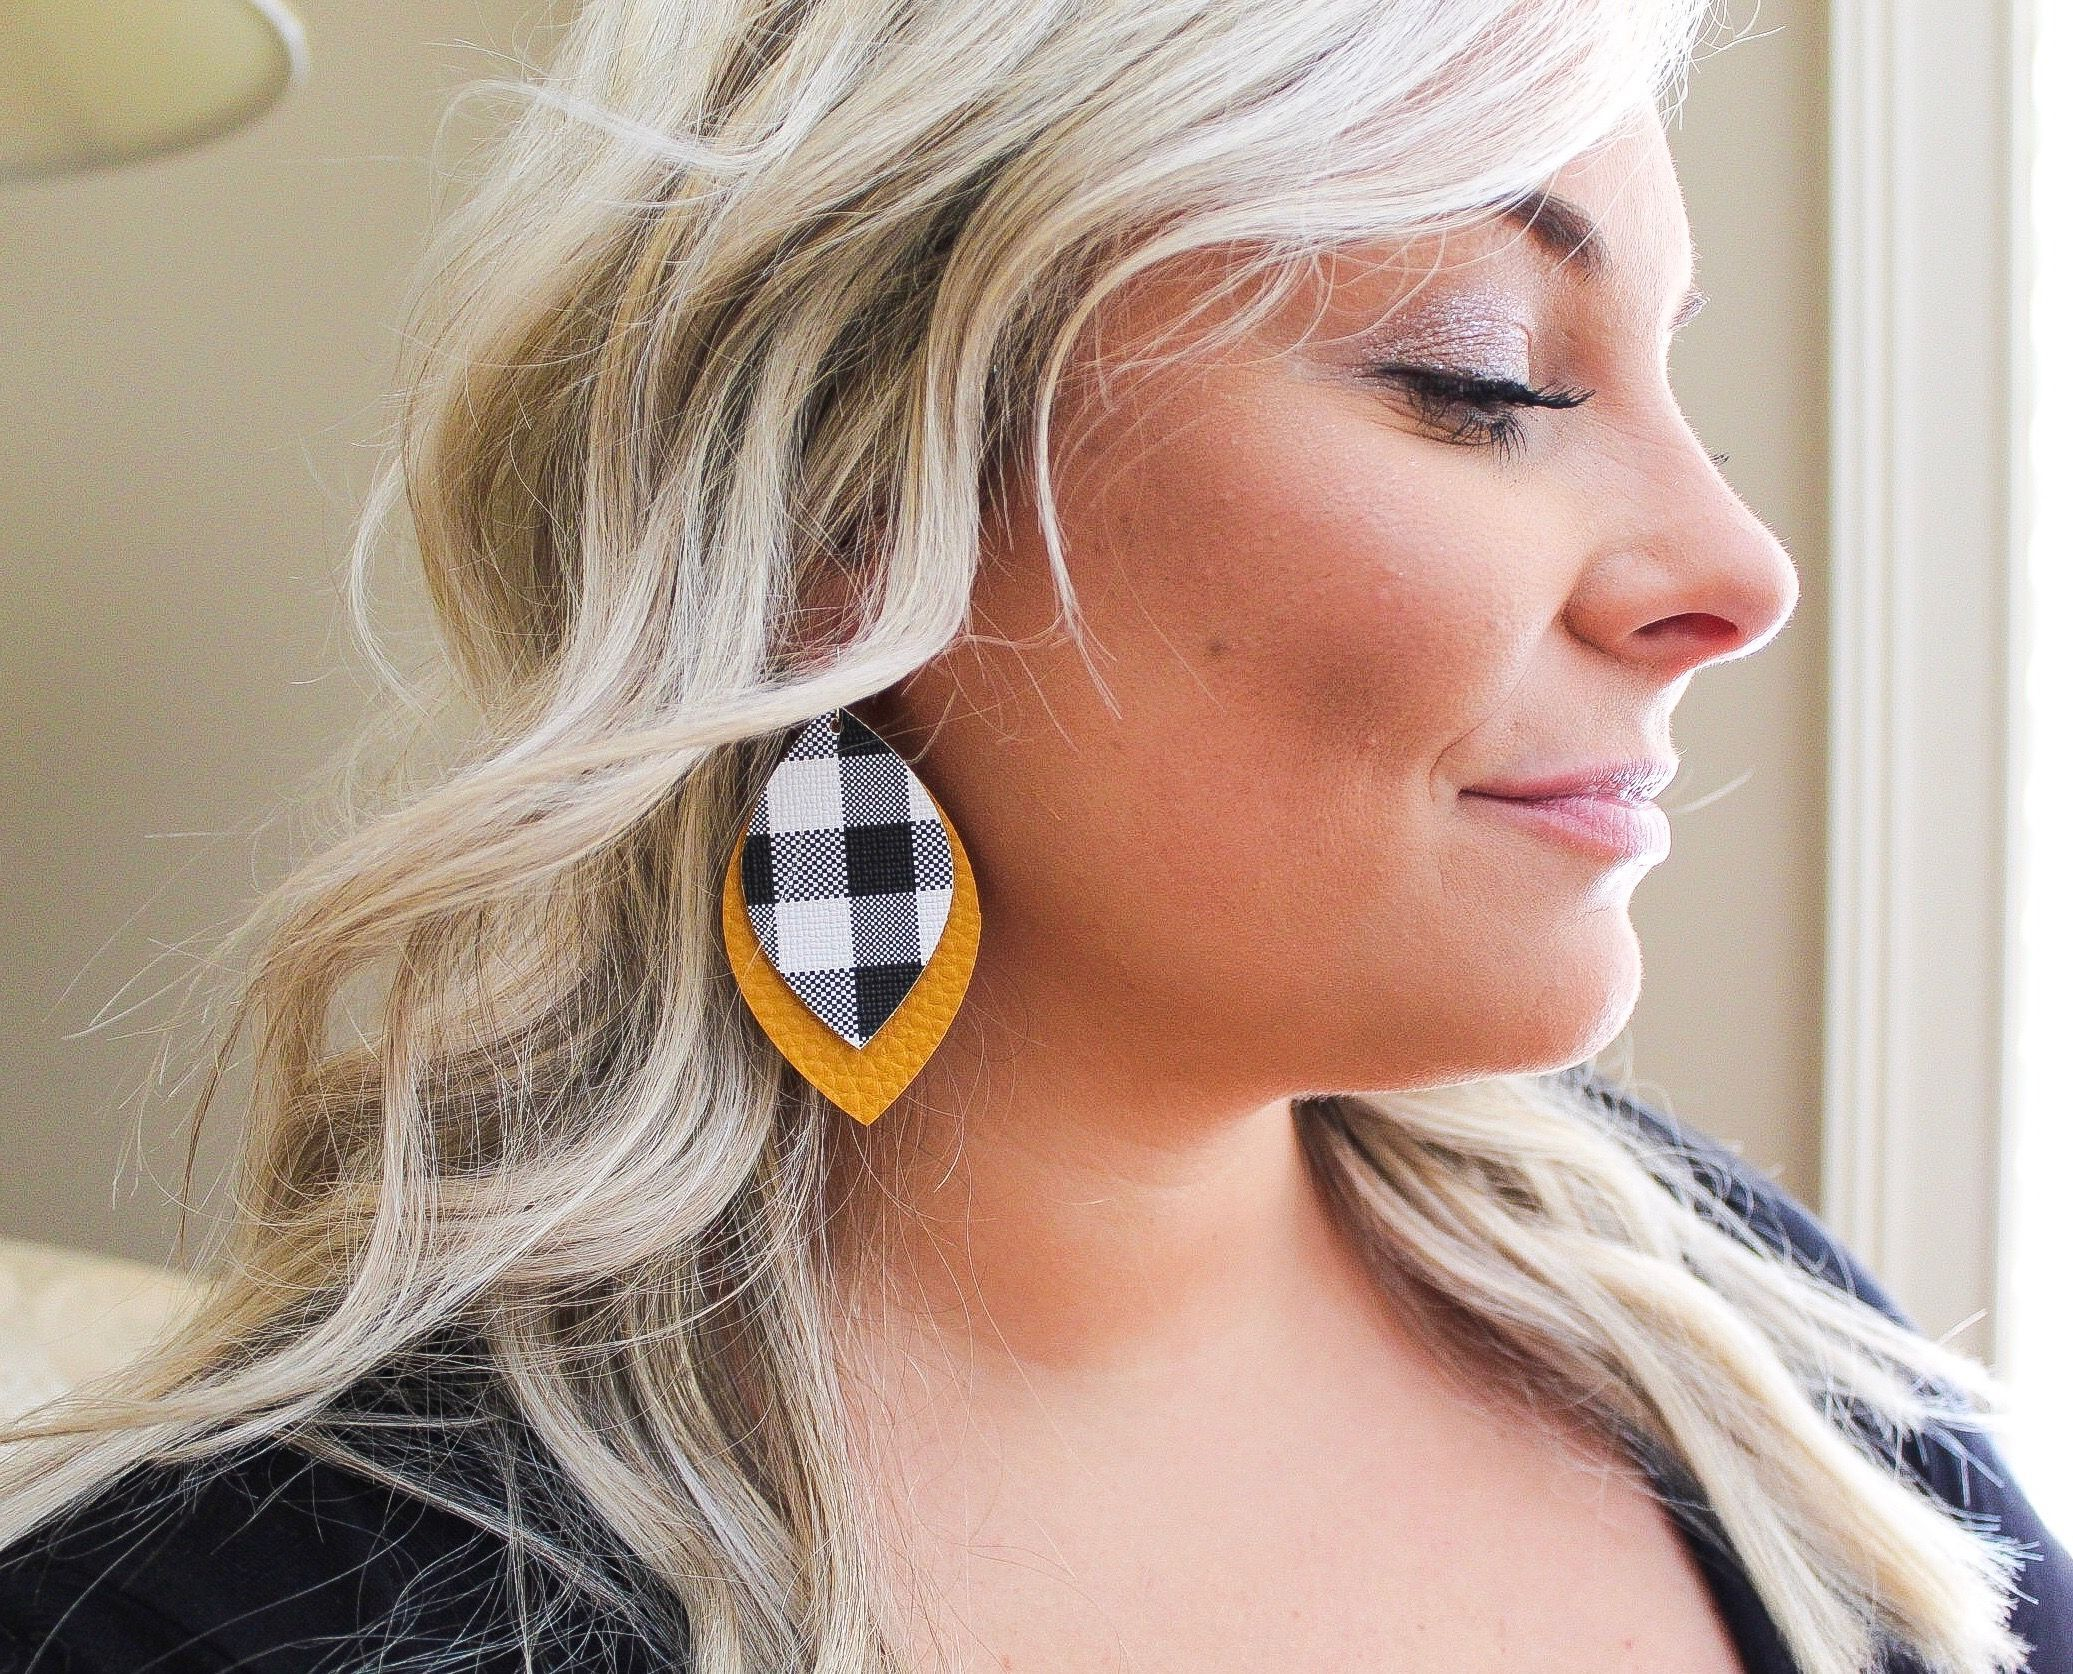 Buffalo Plaid over Mustard Oval Leaf  Fall Accessories are in full swing We are loving these Black and White Buffalo Plaid and Mustard